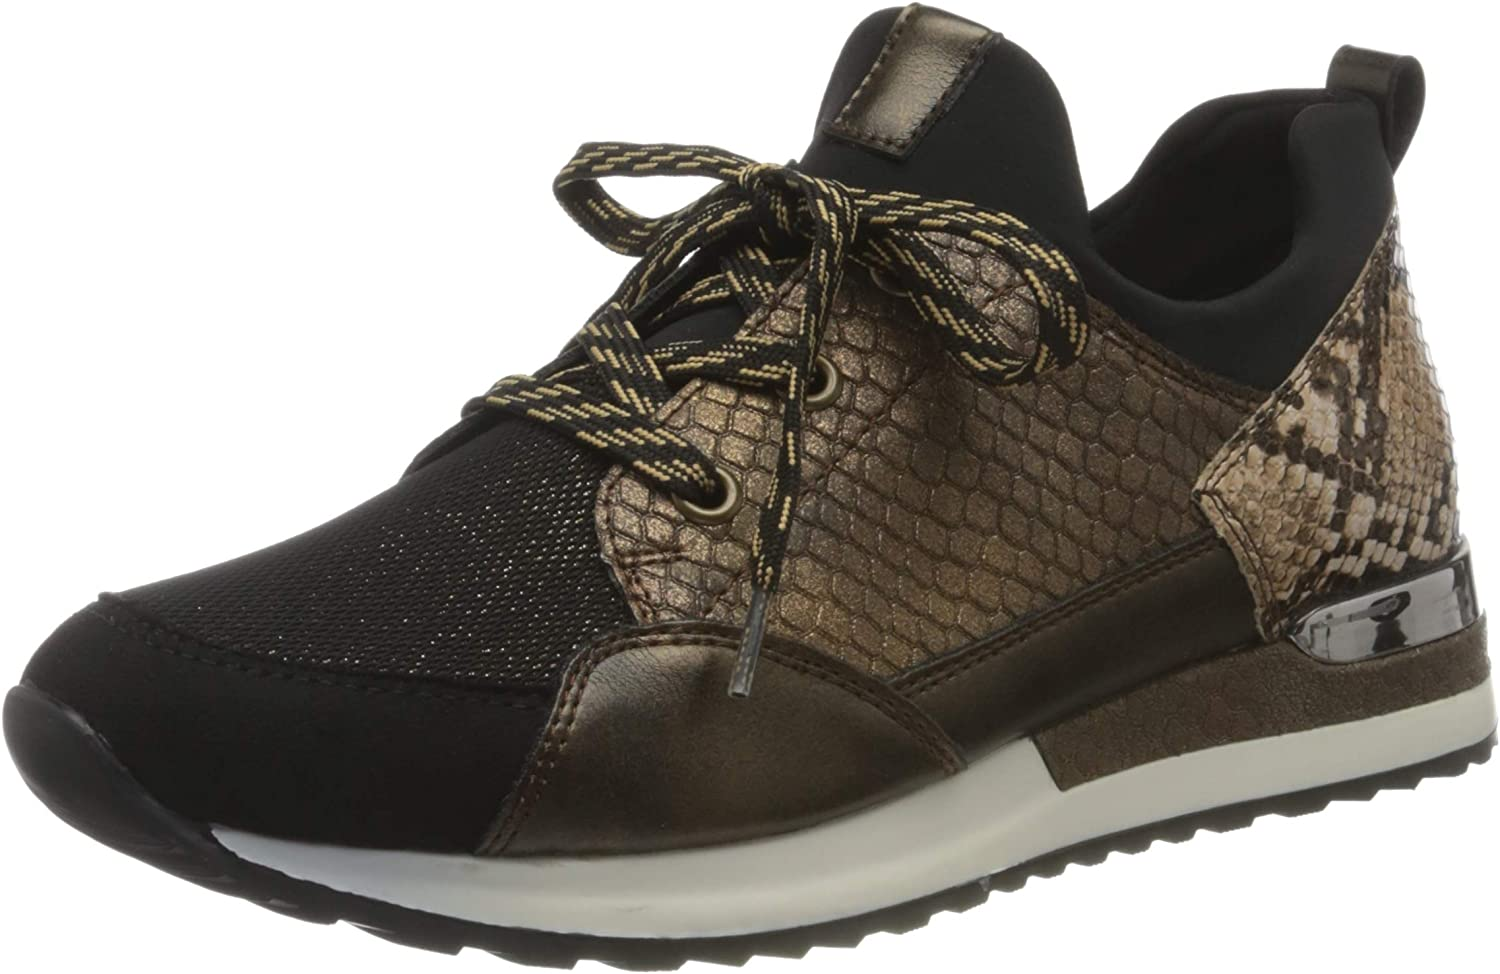 Remonte Lowest price challenge Women's 67% OFF of fixed price Low-Top Sneakers Ant Antique Bronze Black